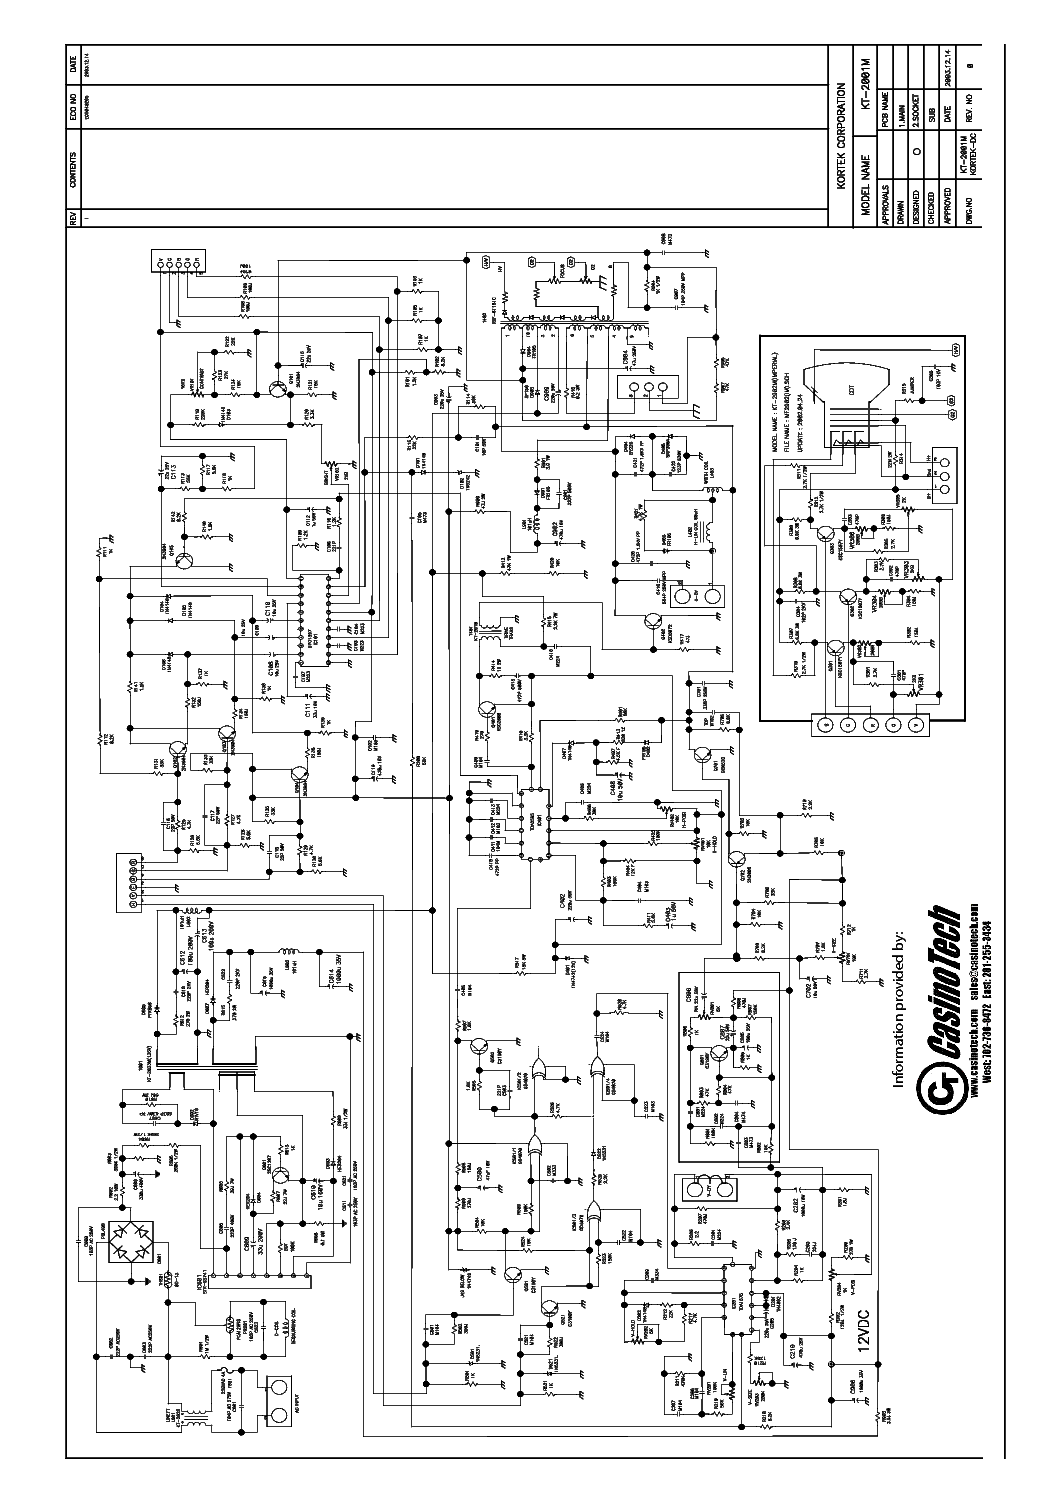 Kortek Kt2001m Service Manual Download  Schematics  Eeprom  Repair Info For Electronics Experts